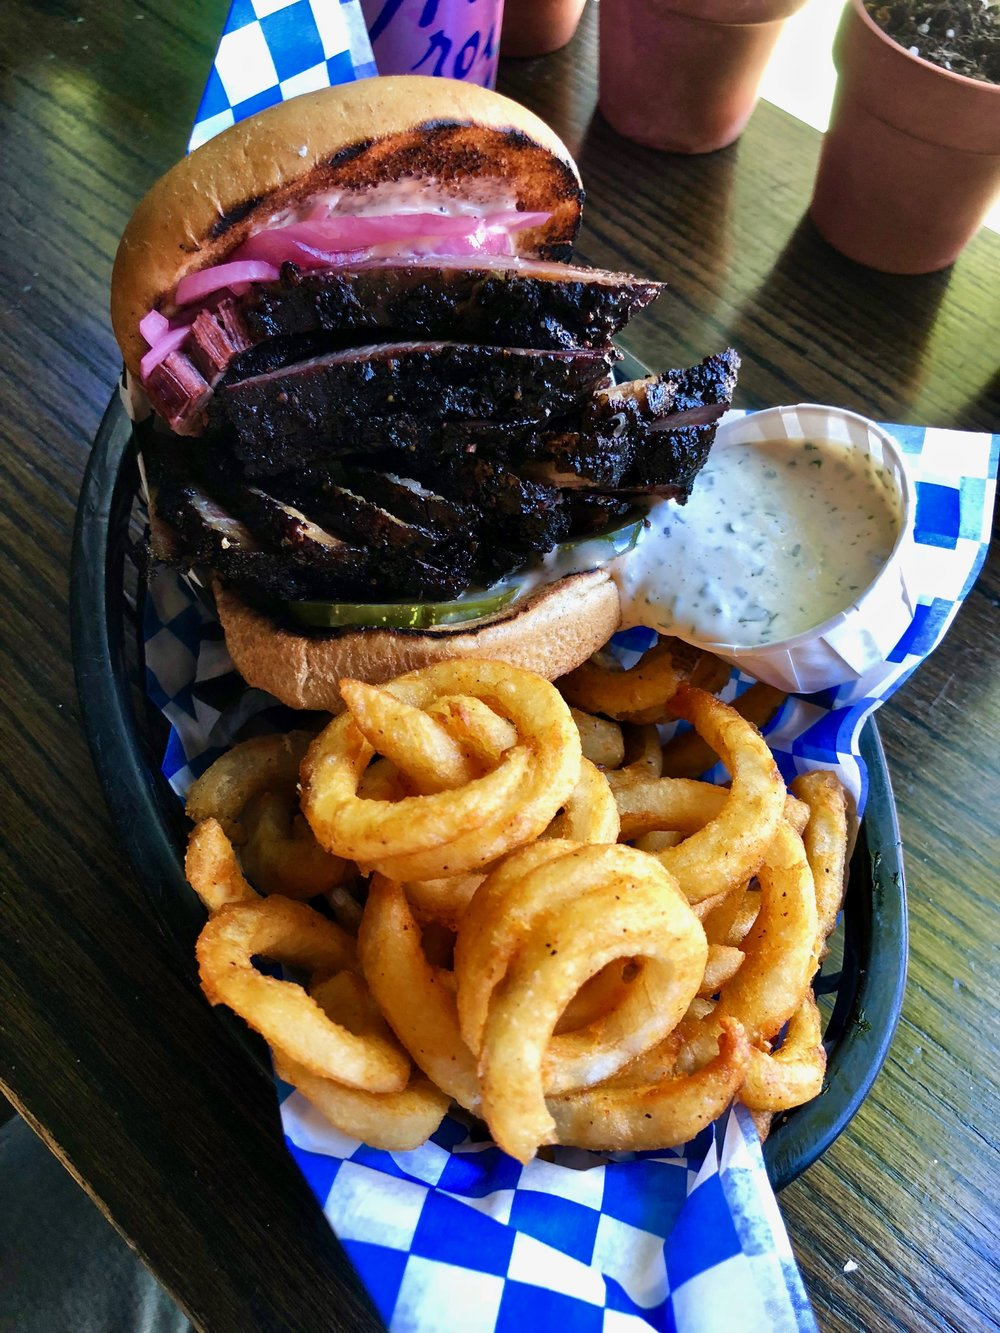 brisket sandwich with curly fries